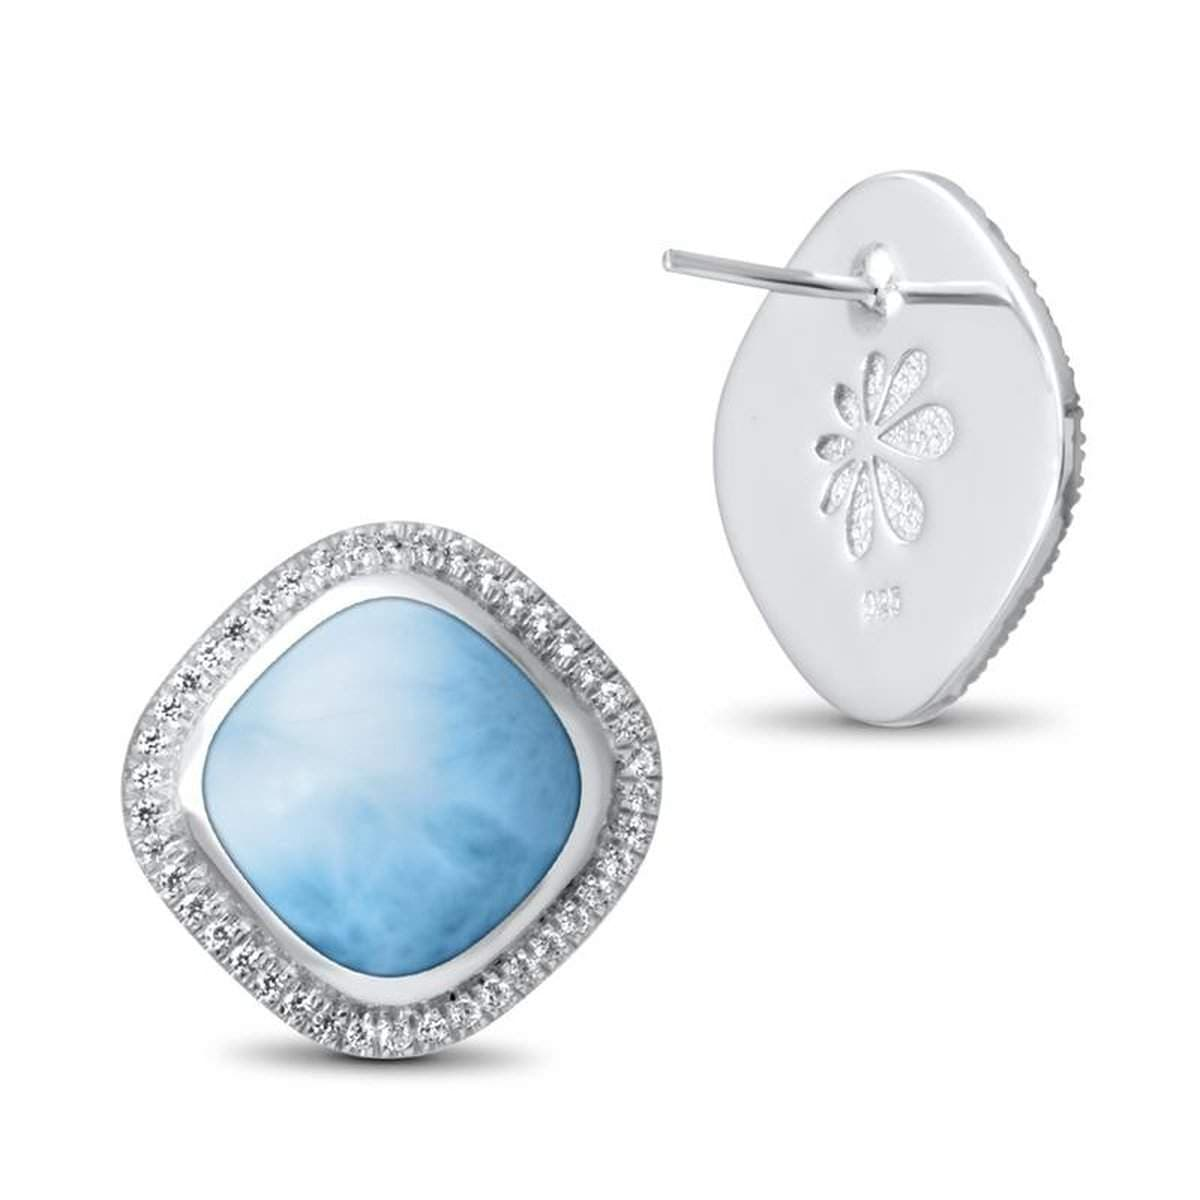 Clarity Cushion White Sapphire Earrings - Eclar01-00-Marahlago Larimar-Renee Taylor Gallery